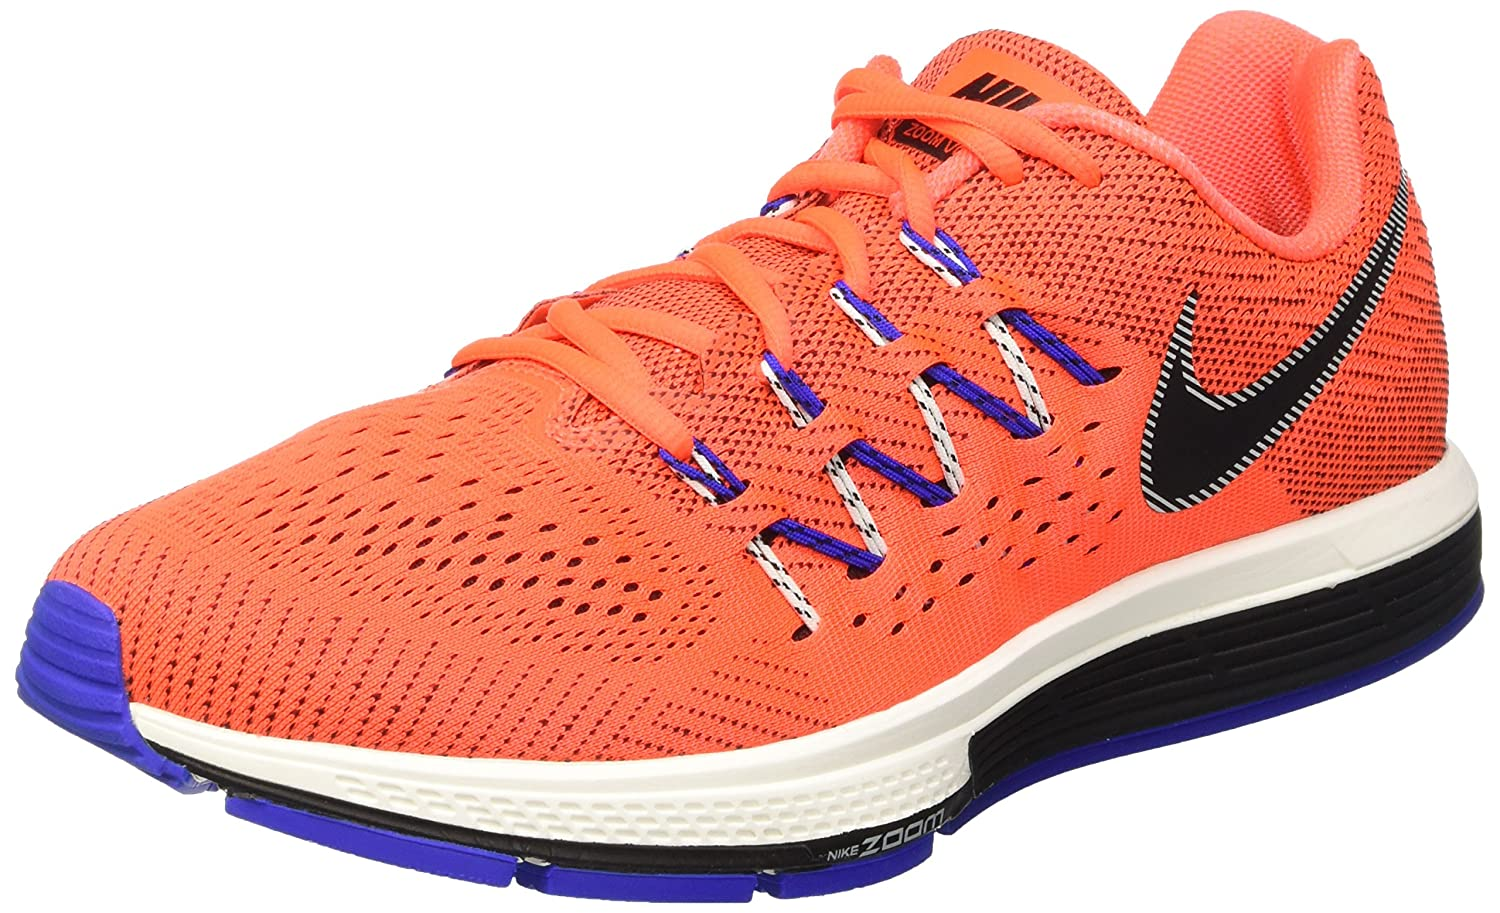 reputable site 96c76 81cbb Amazon.com   Nike Air Zoom Vomero 10 Mens Running Shoes   Running